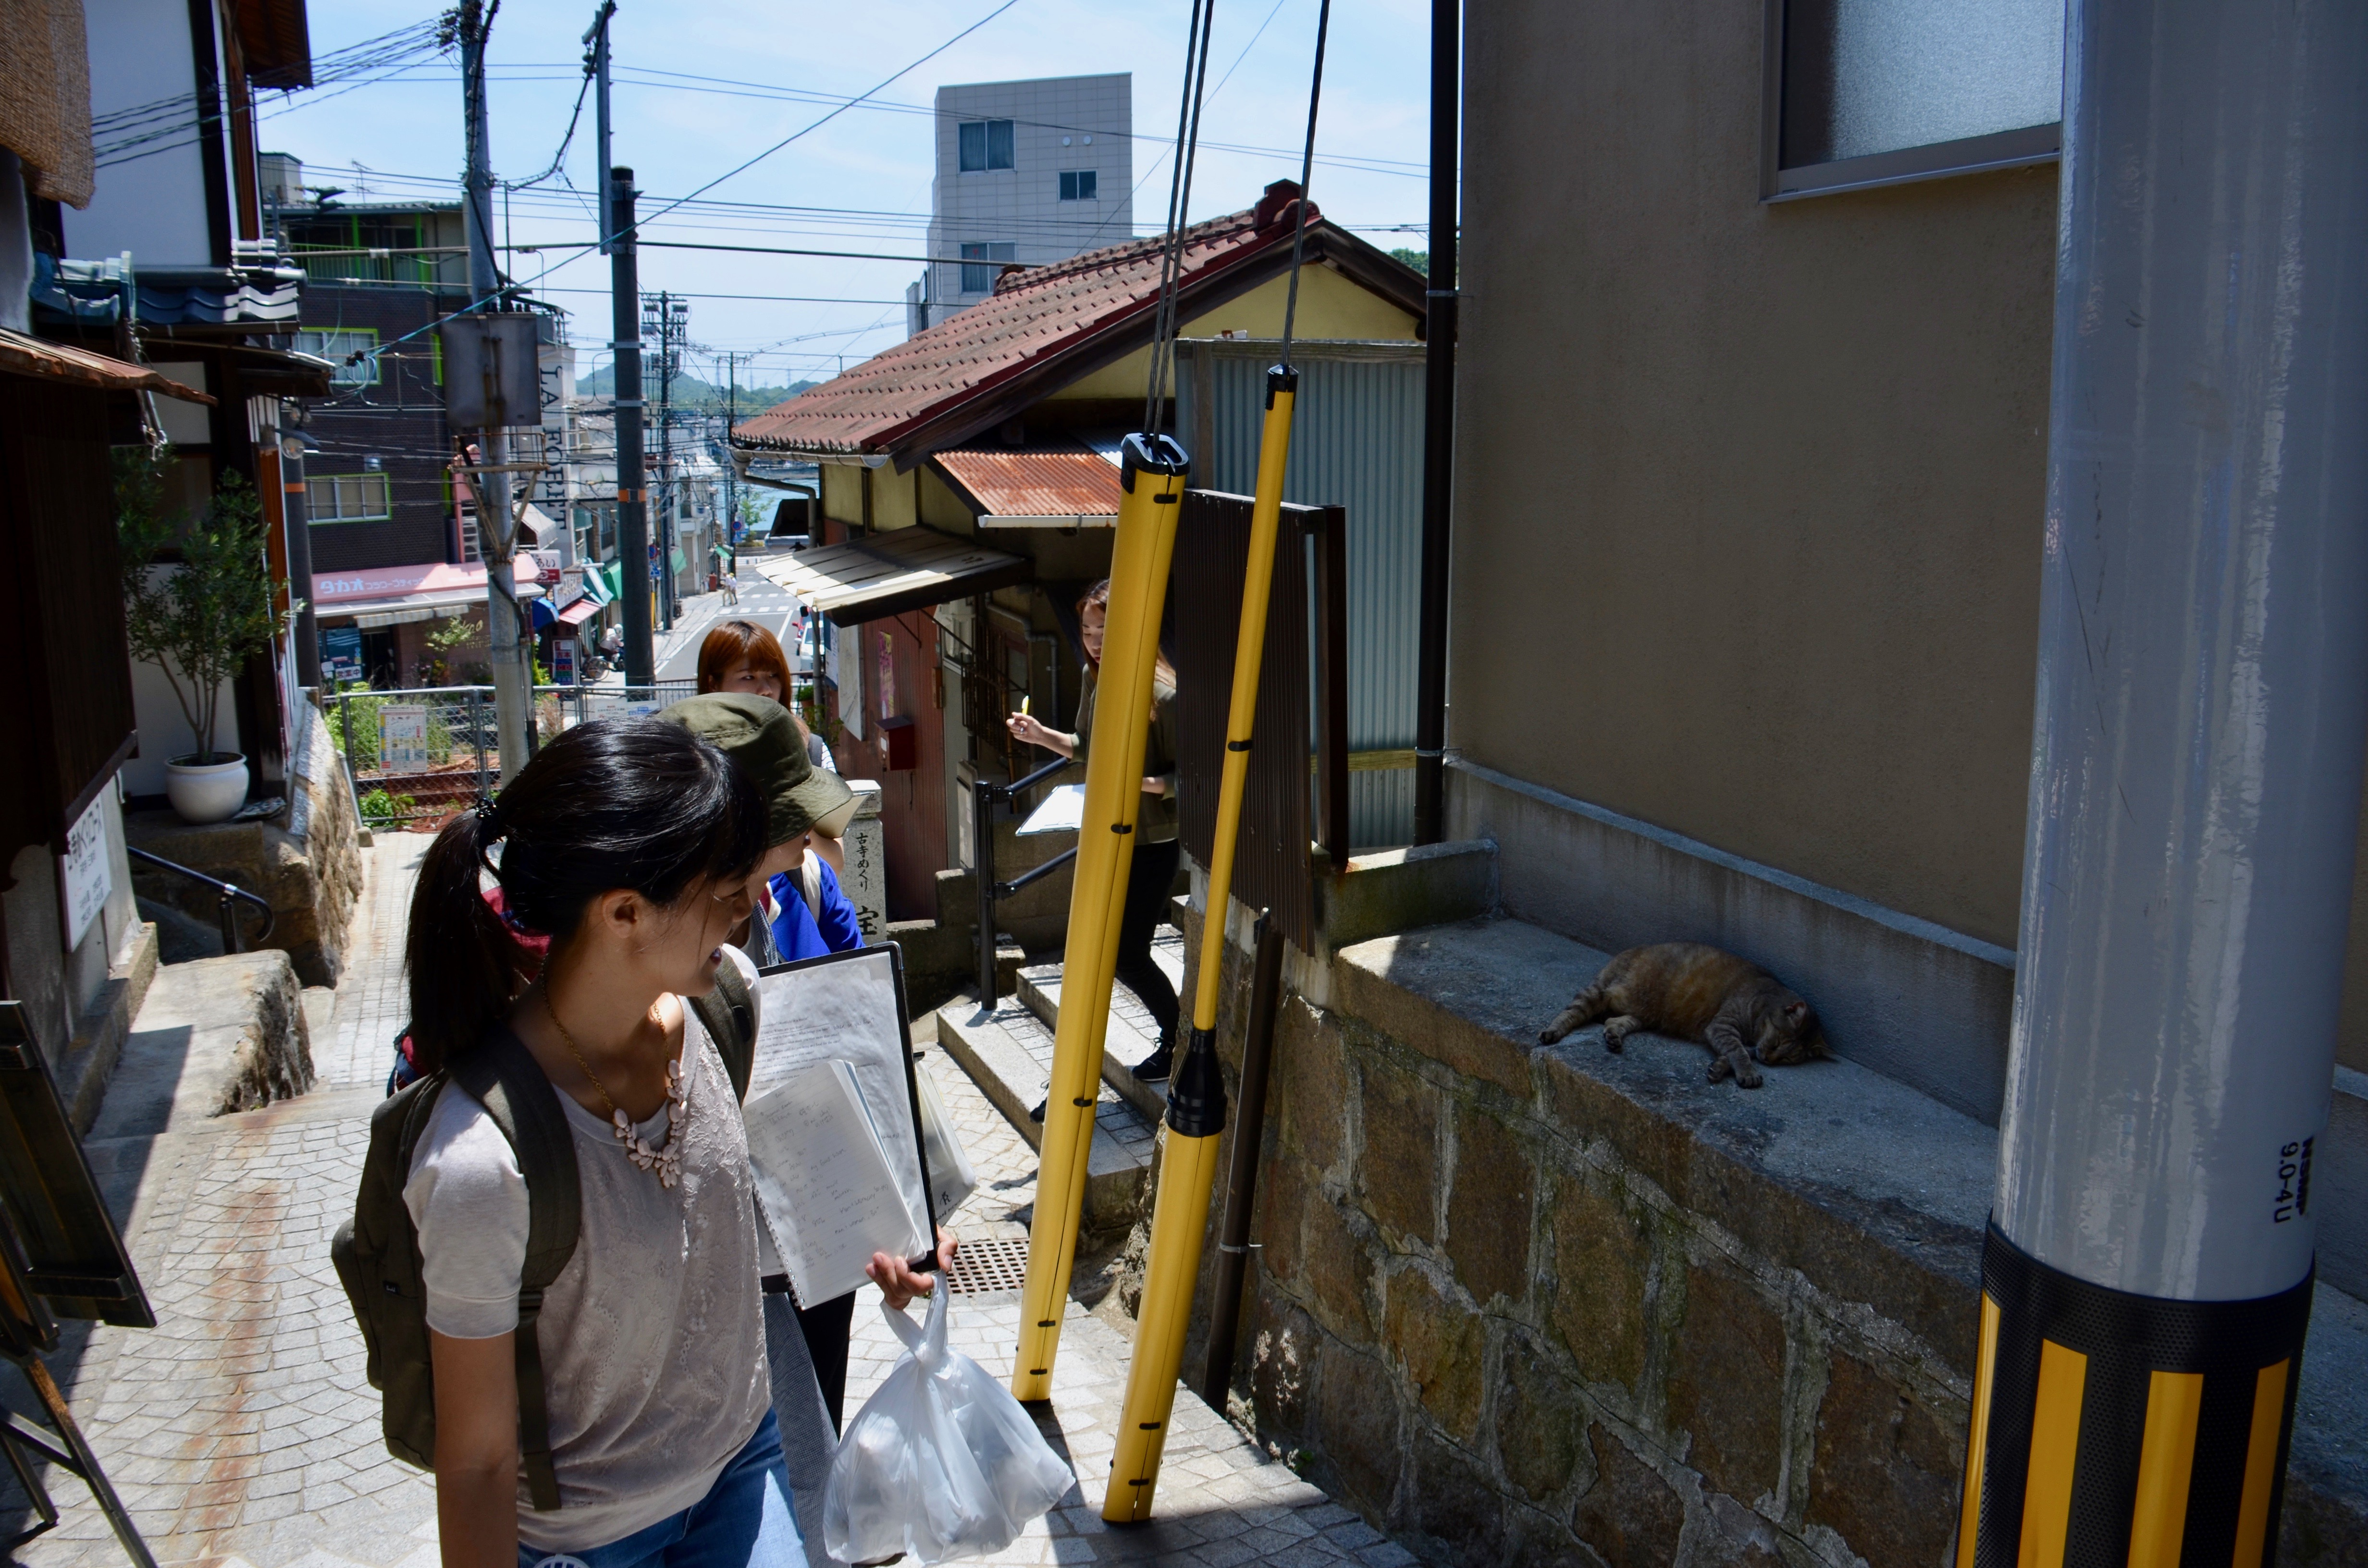 Stephany Ota, MAPP class 2017, viewing a cat with some students from Hiroshima University.